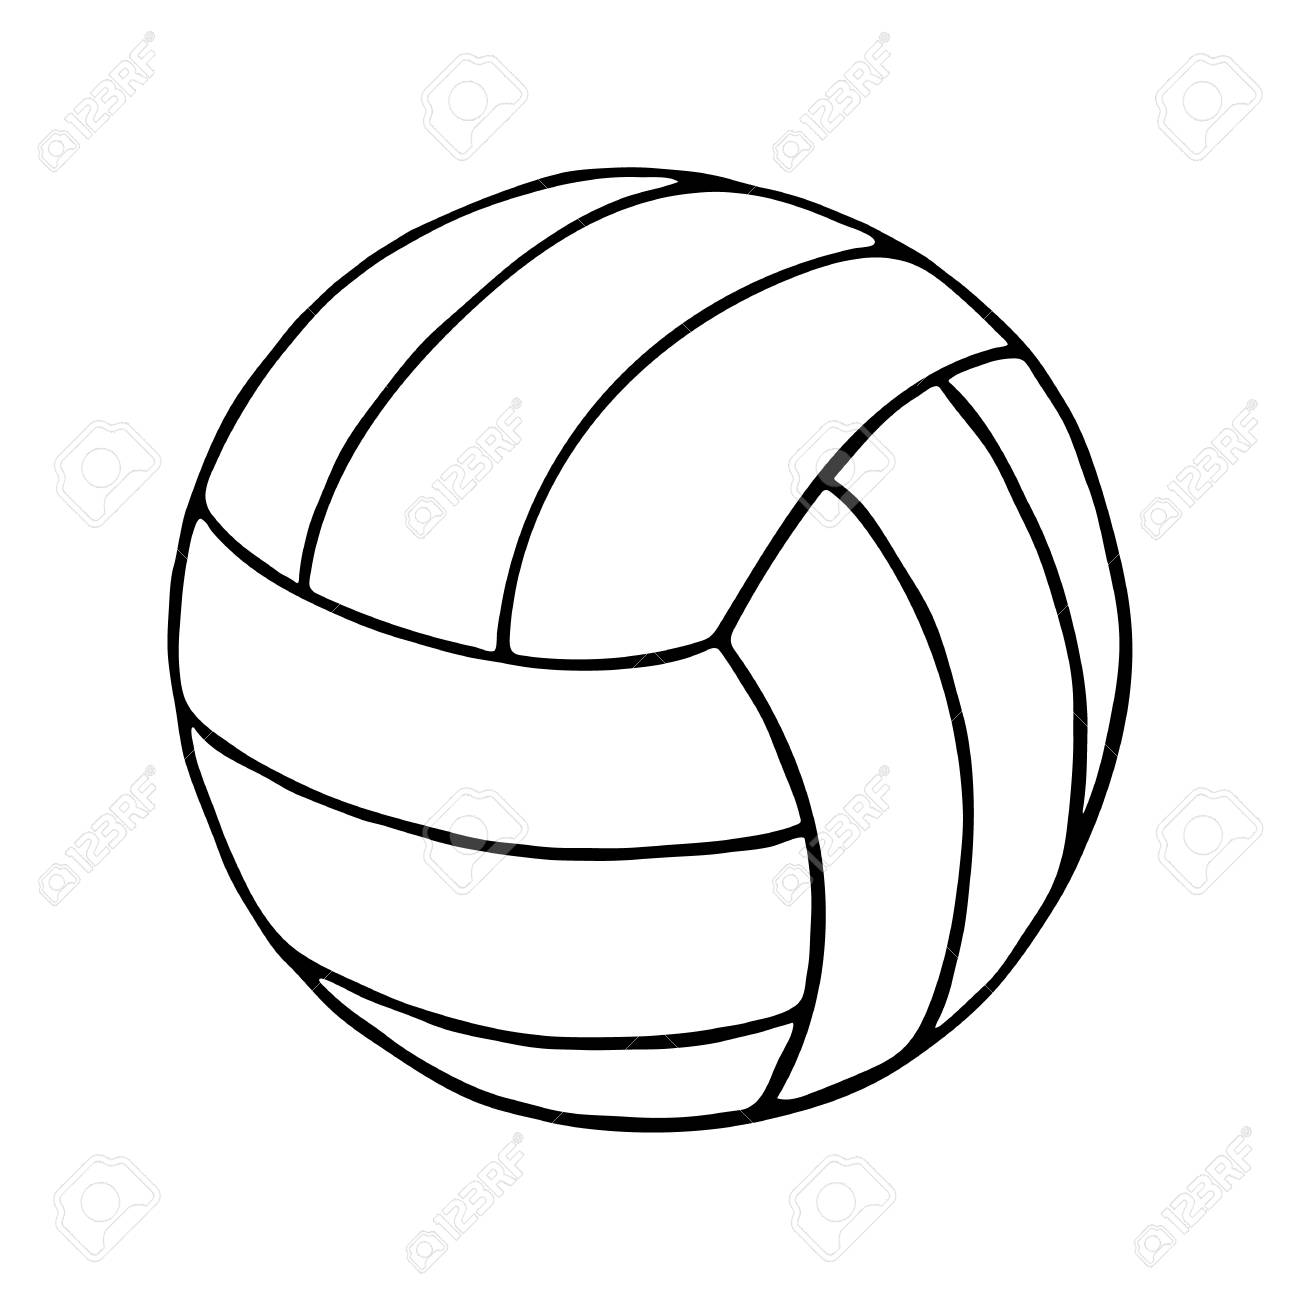 Clipart volleyball outline. Isolated in white background